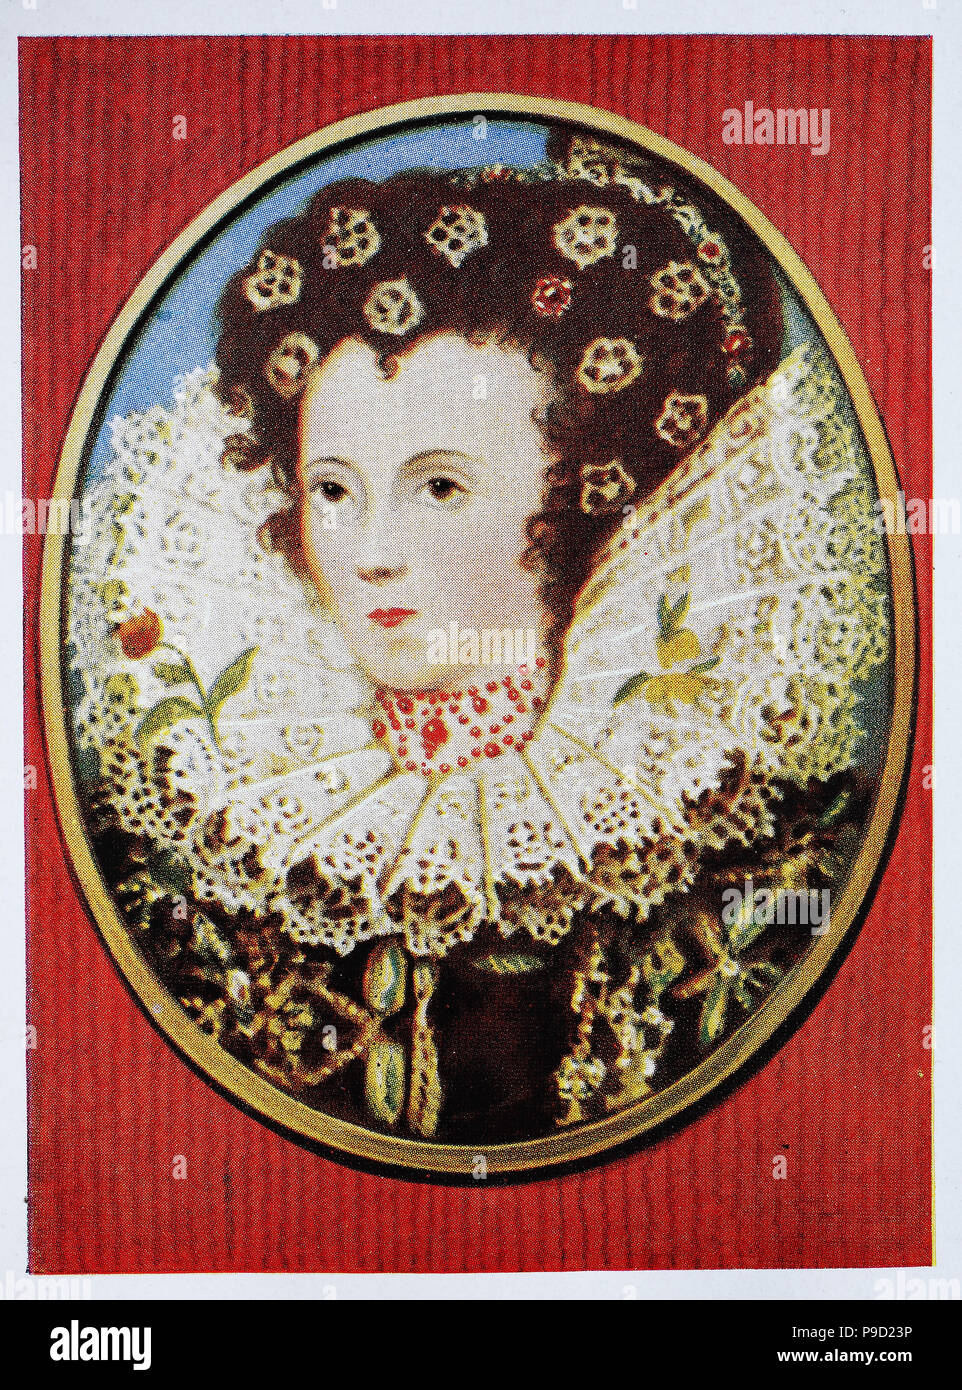 Elizabeth I, 7 September 1533 – 24 March 1603, was Queen of England and Ireland from 17 November 1558 until her death on 24 March 1603, digital improved reproduction of an original print from the year 1900 - Stock Image